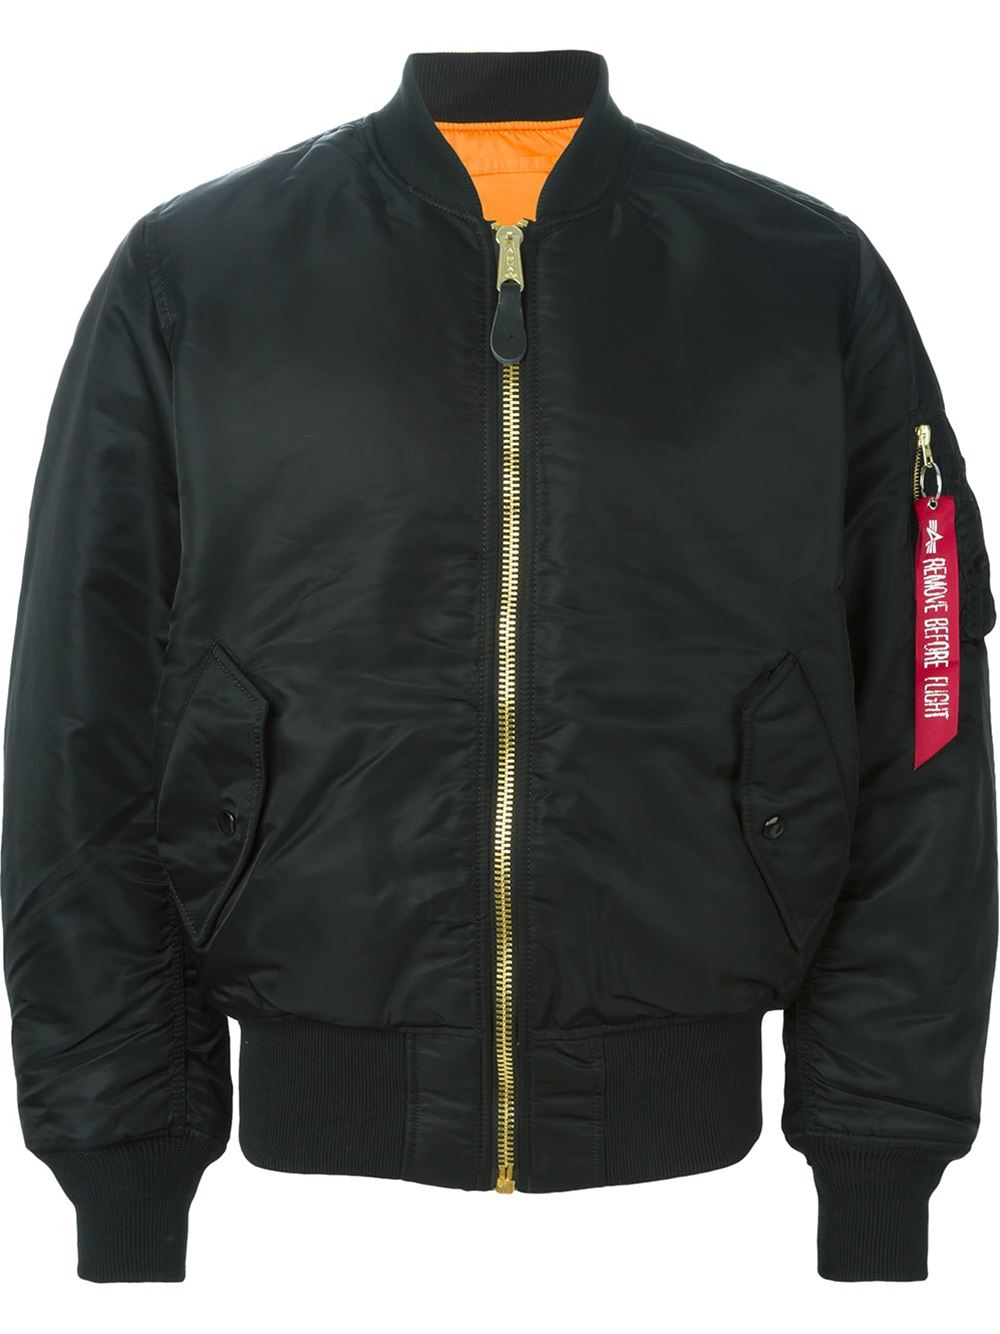 alpha industries classic bomber jacket in black for men lyst. Black Bedroom Furniture Sets. Home Design Ideas